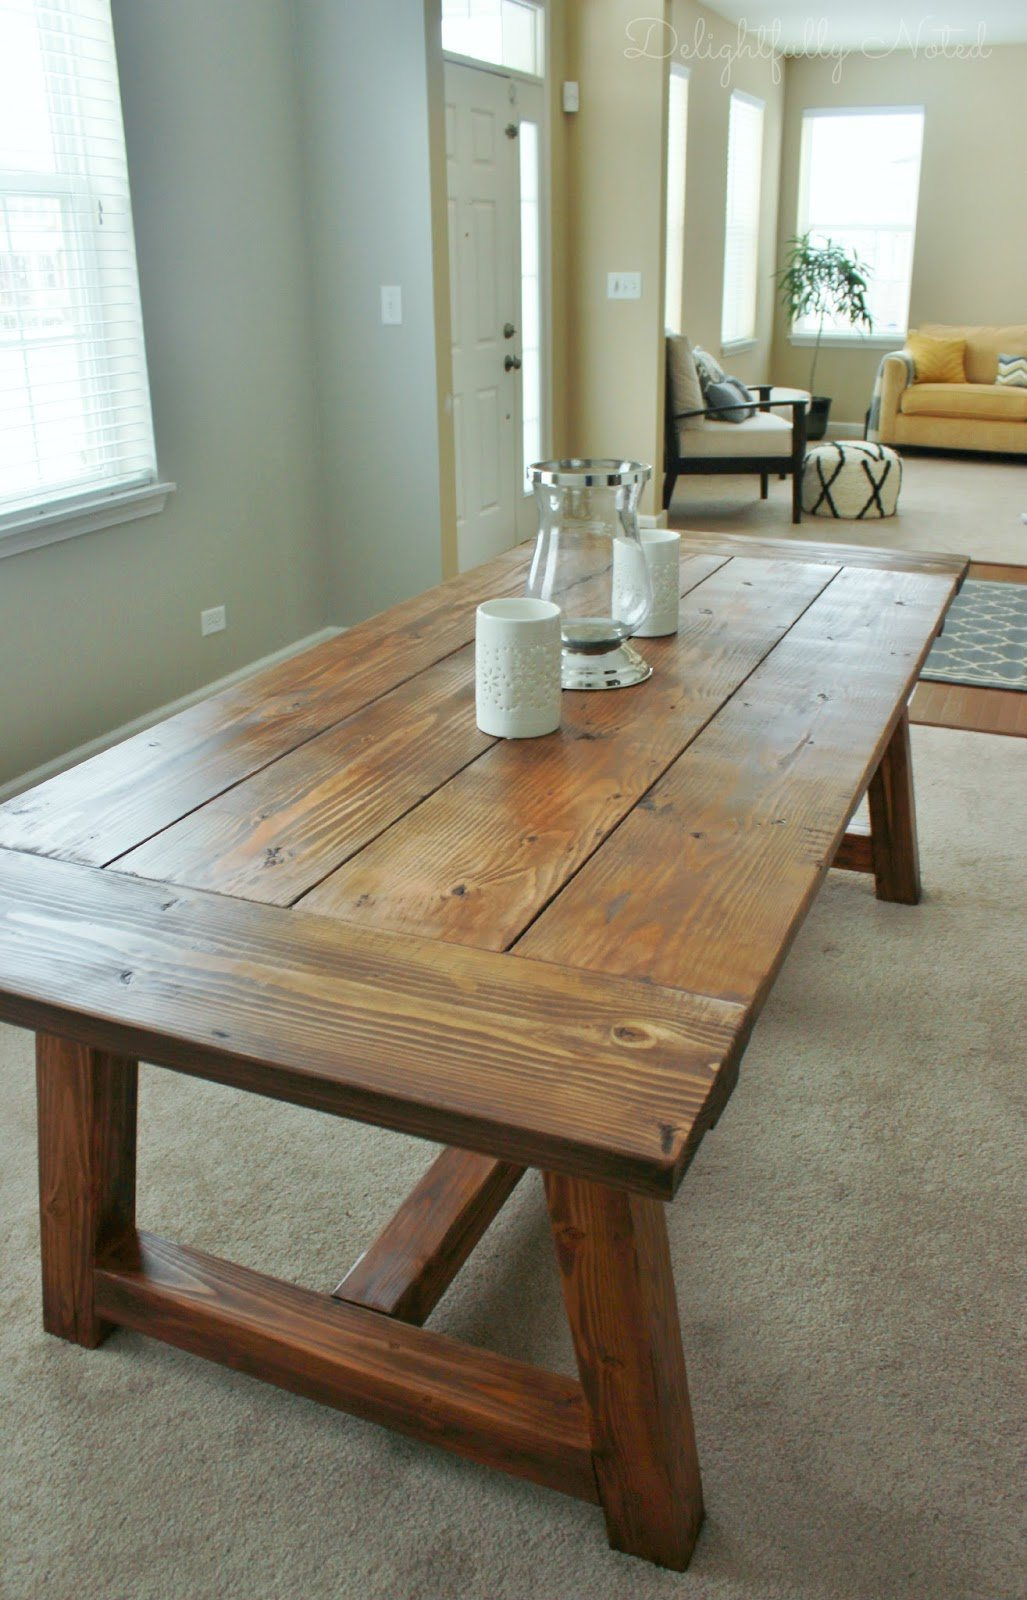 Stunning Diy Farmhouse Tables The Girl Creative